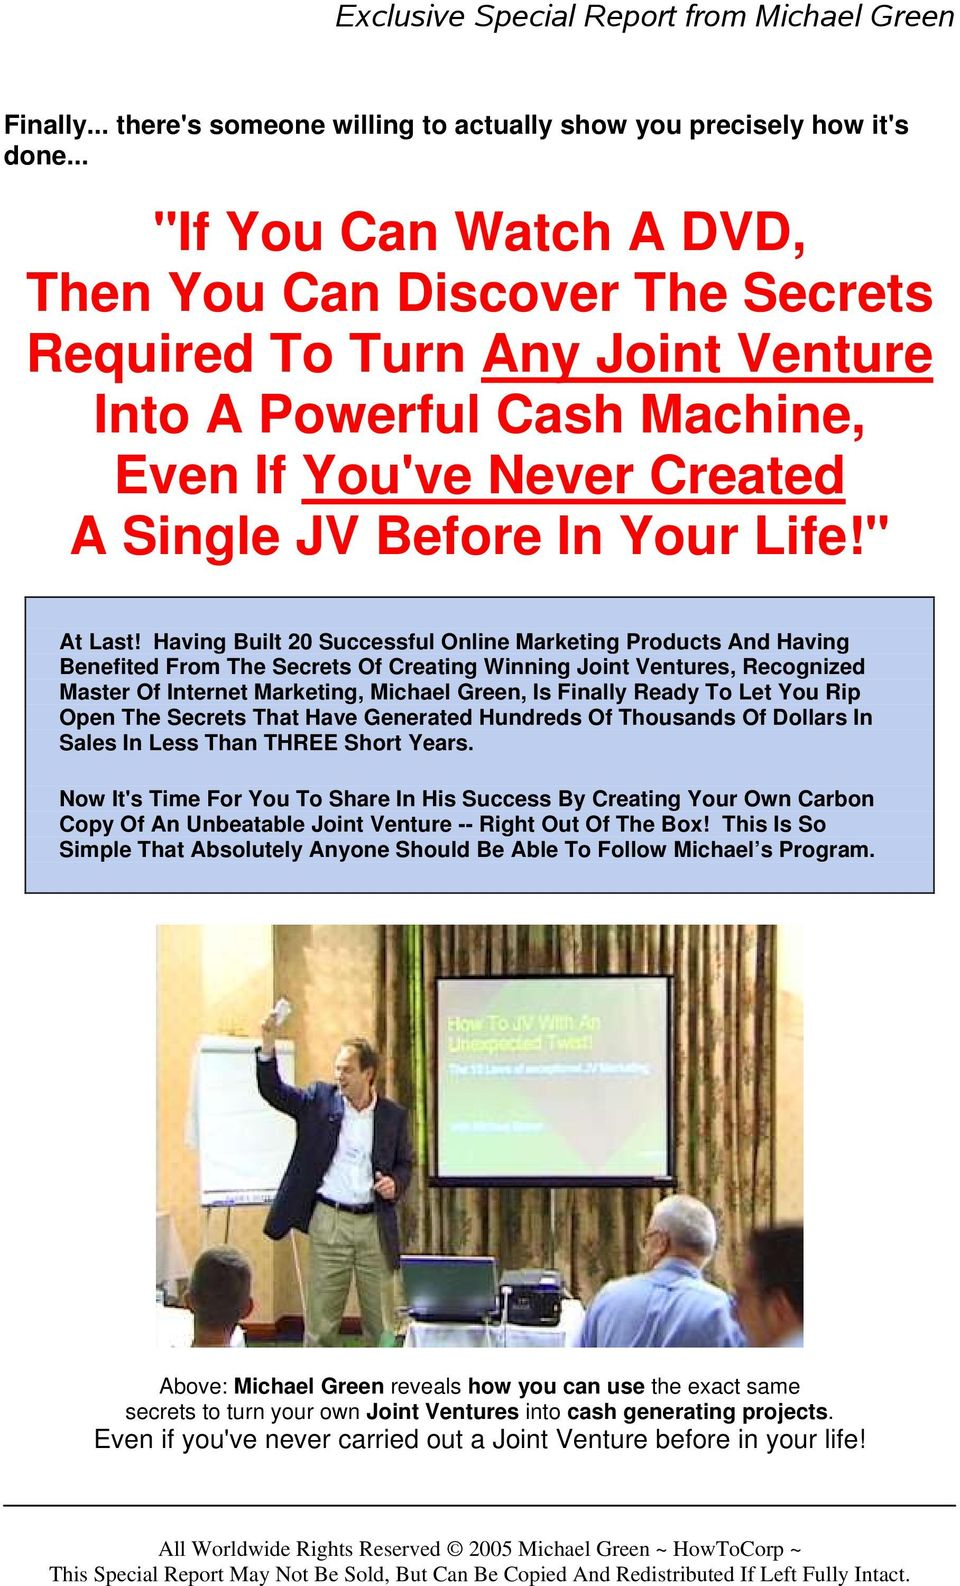 Having Built 20 Successful Online Marketing Products And Having Benefited From The Secrets Of Creating Winning Joint Ventures, Recognized Master Of Internet Marketing, Michael Green, Is Finally Ready